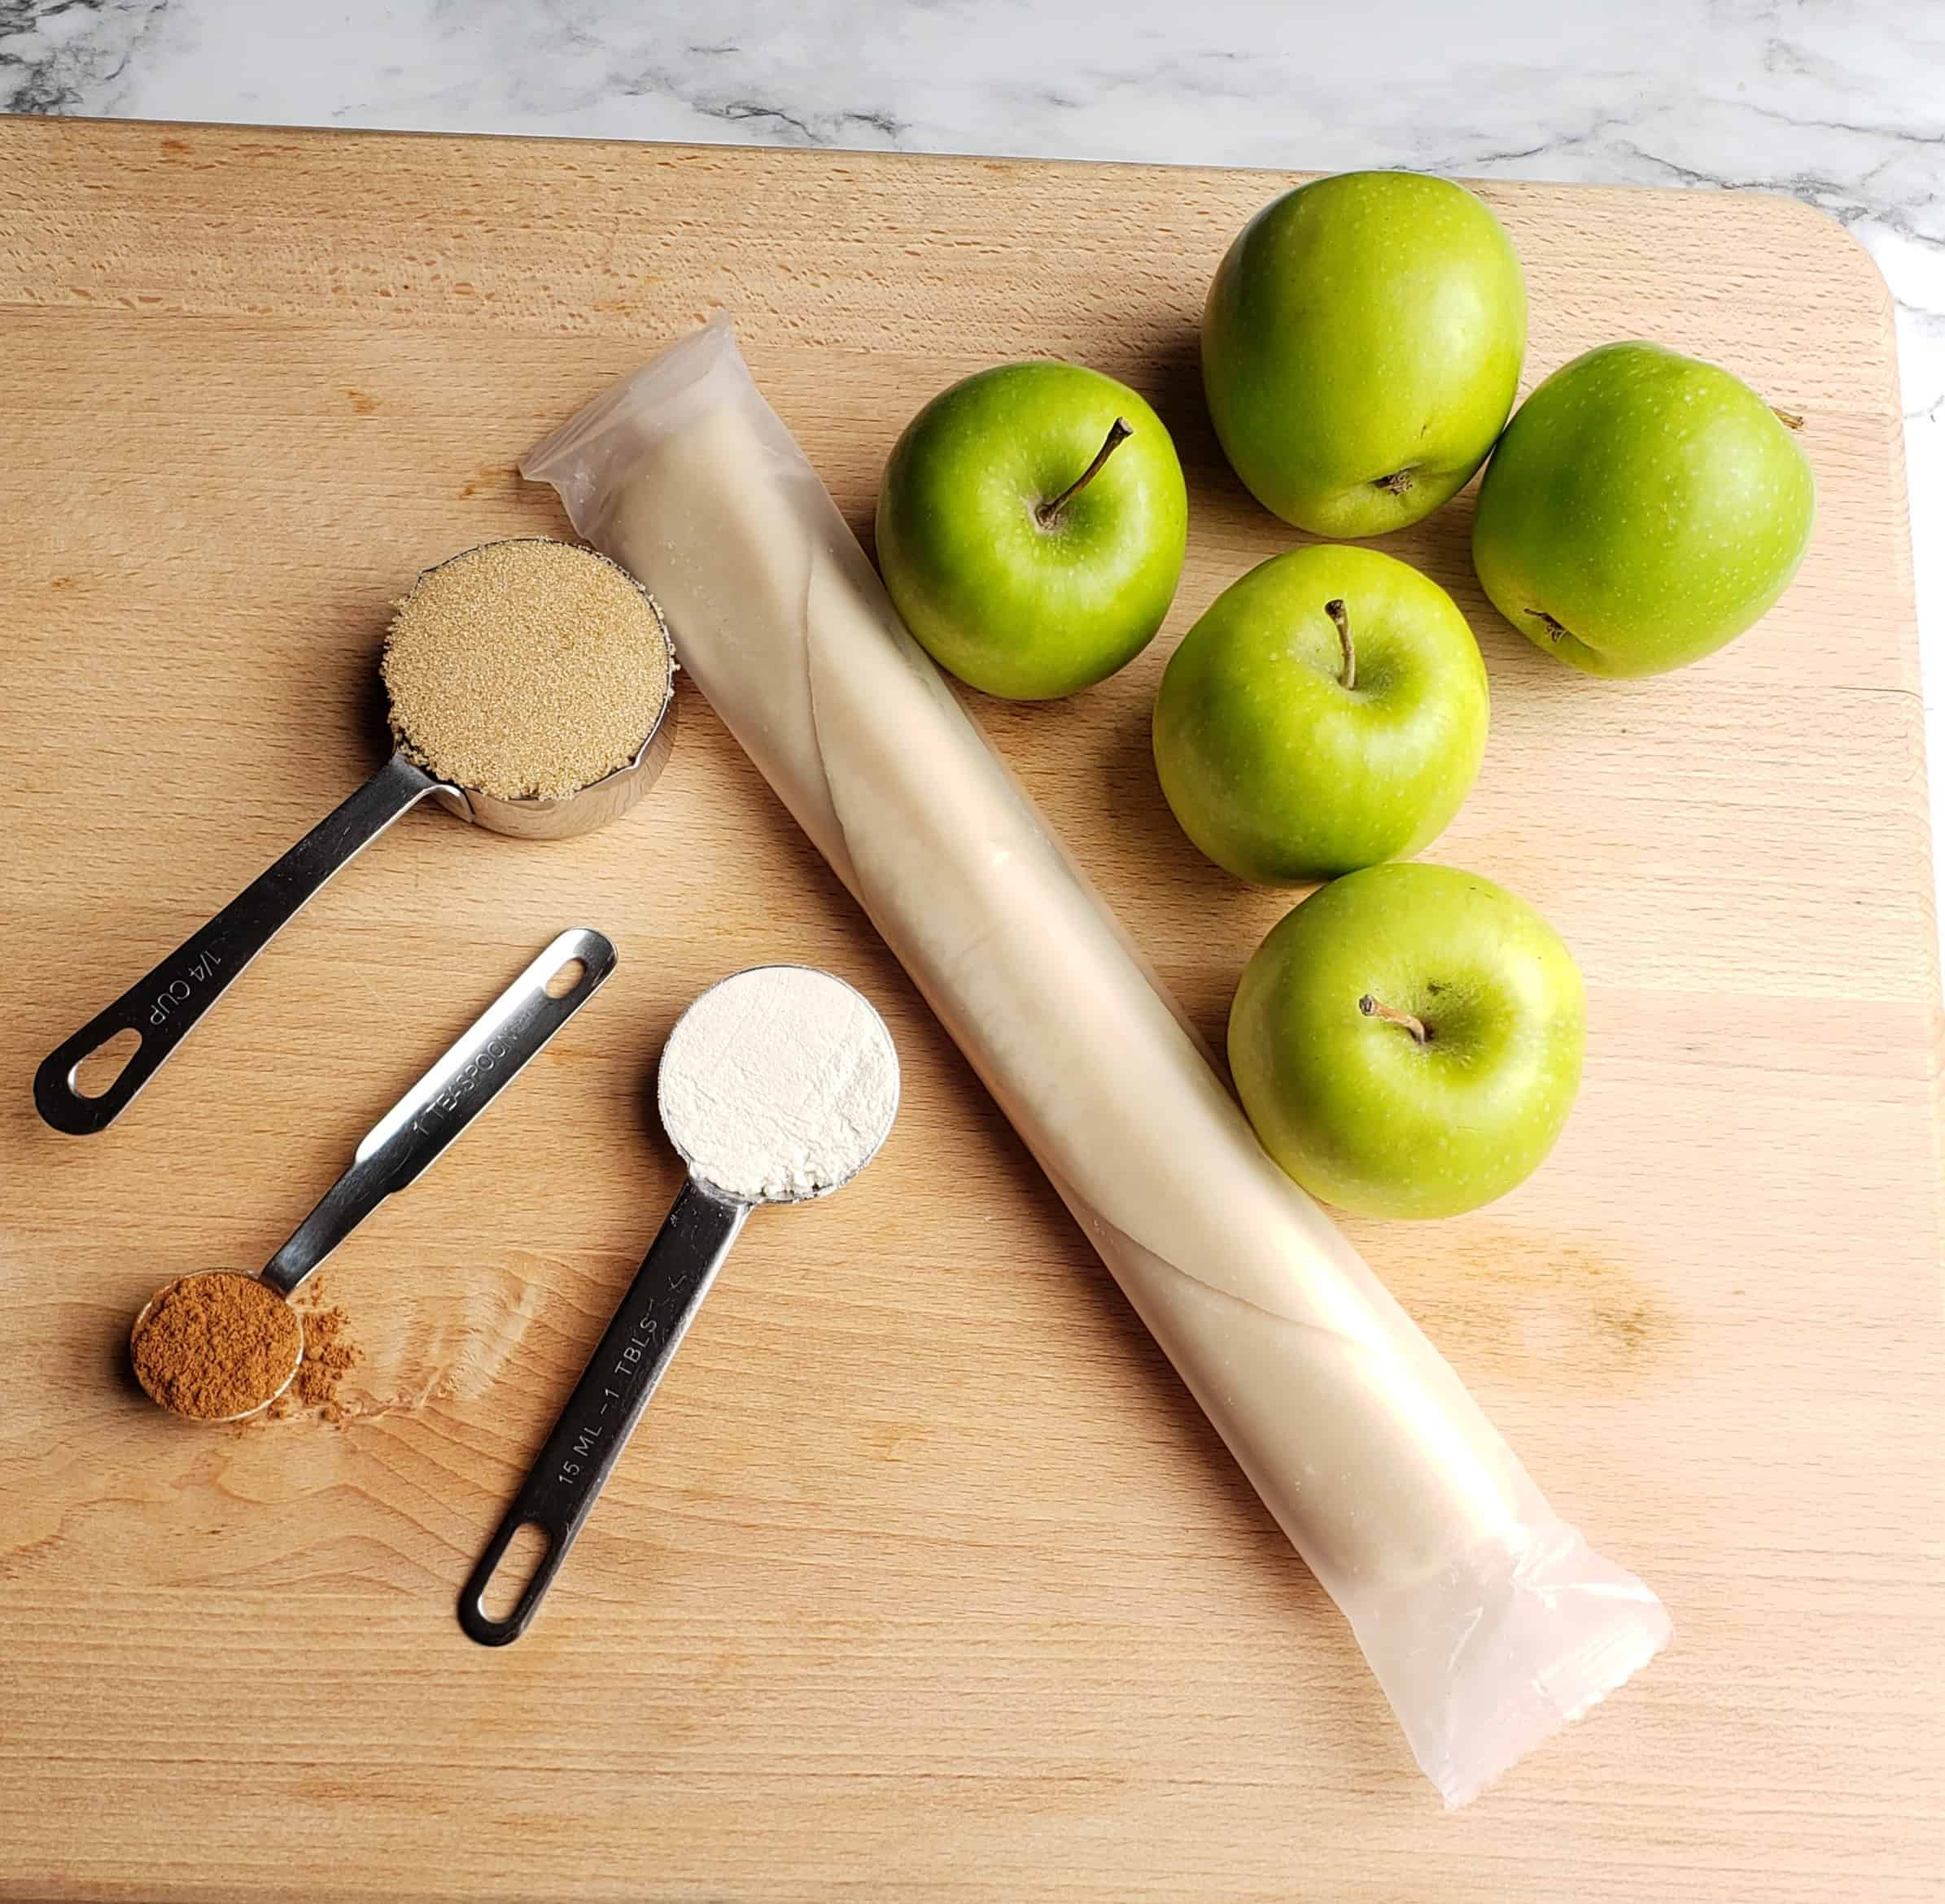 Pie crust rolled up with apples and spices